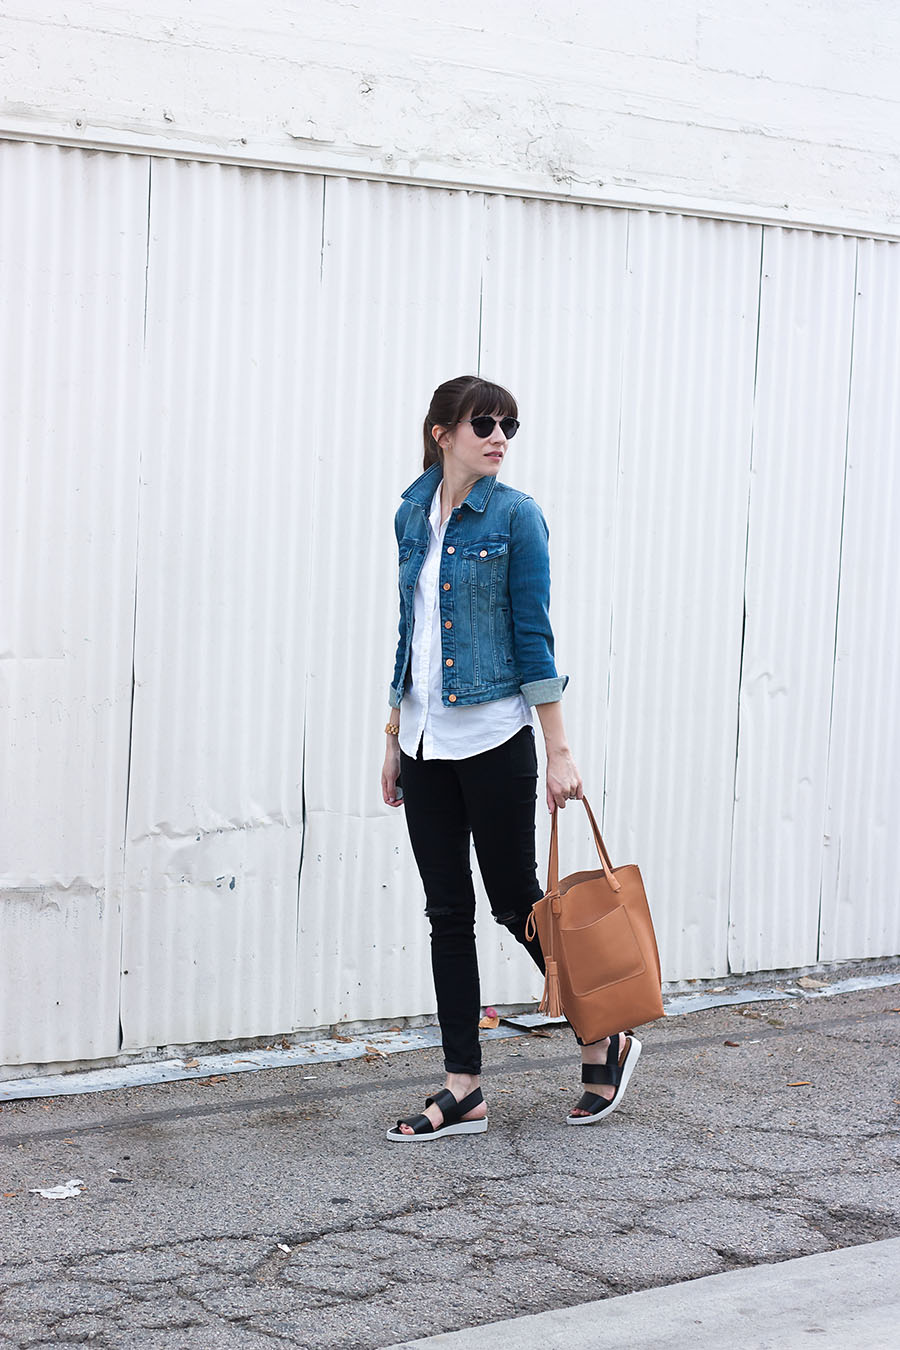 Minimal Style Outfit, Denim Jacket, Tan Leather Tote Bag